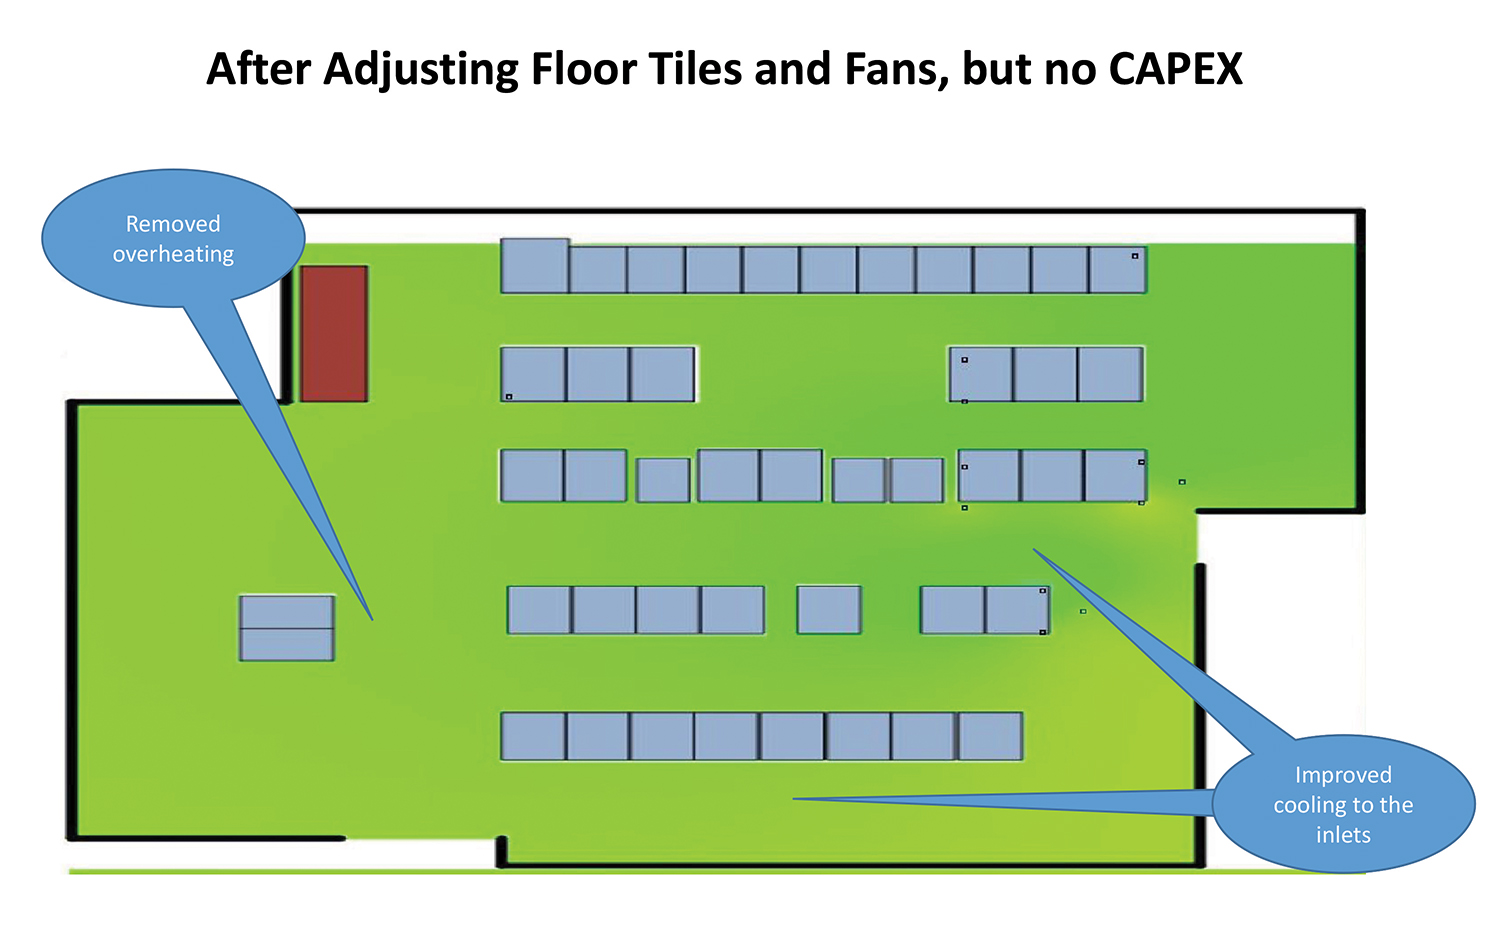 Figure 4. Raytheon believes that sustainability programs tend to pay for themselves, as in this hypothetical in which adjusting floor tiles and fans improved energy efficiency with no capital expenditure.